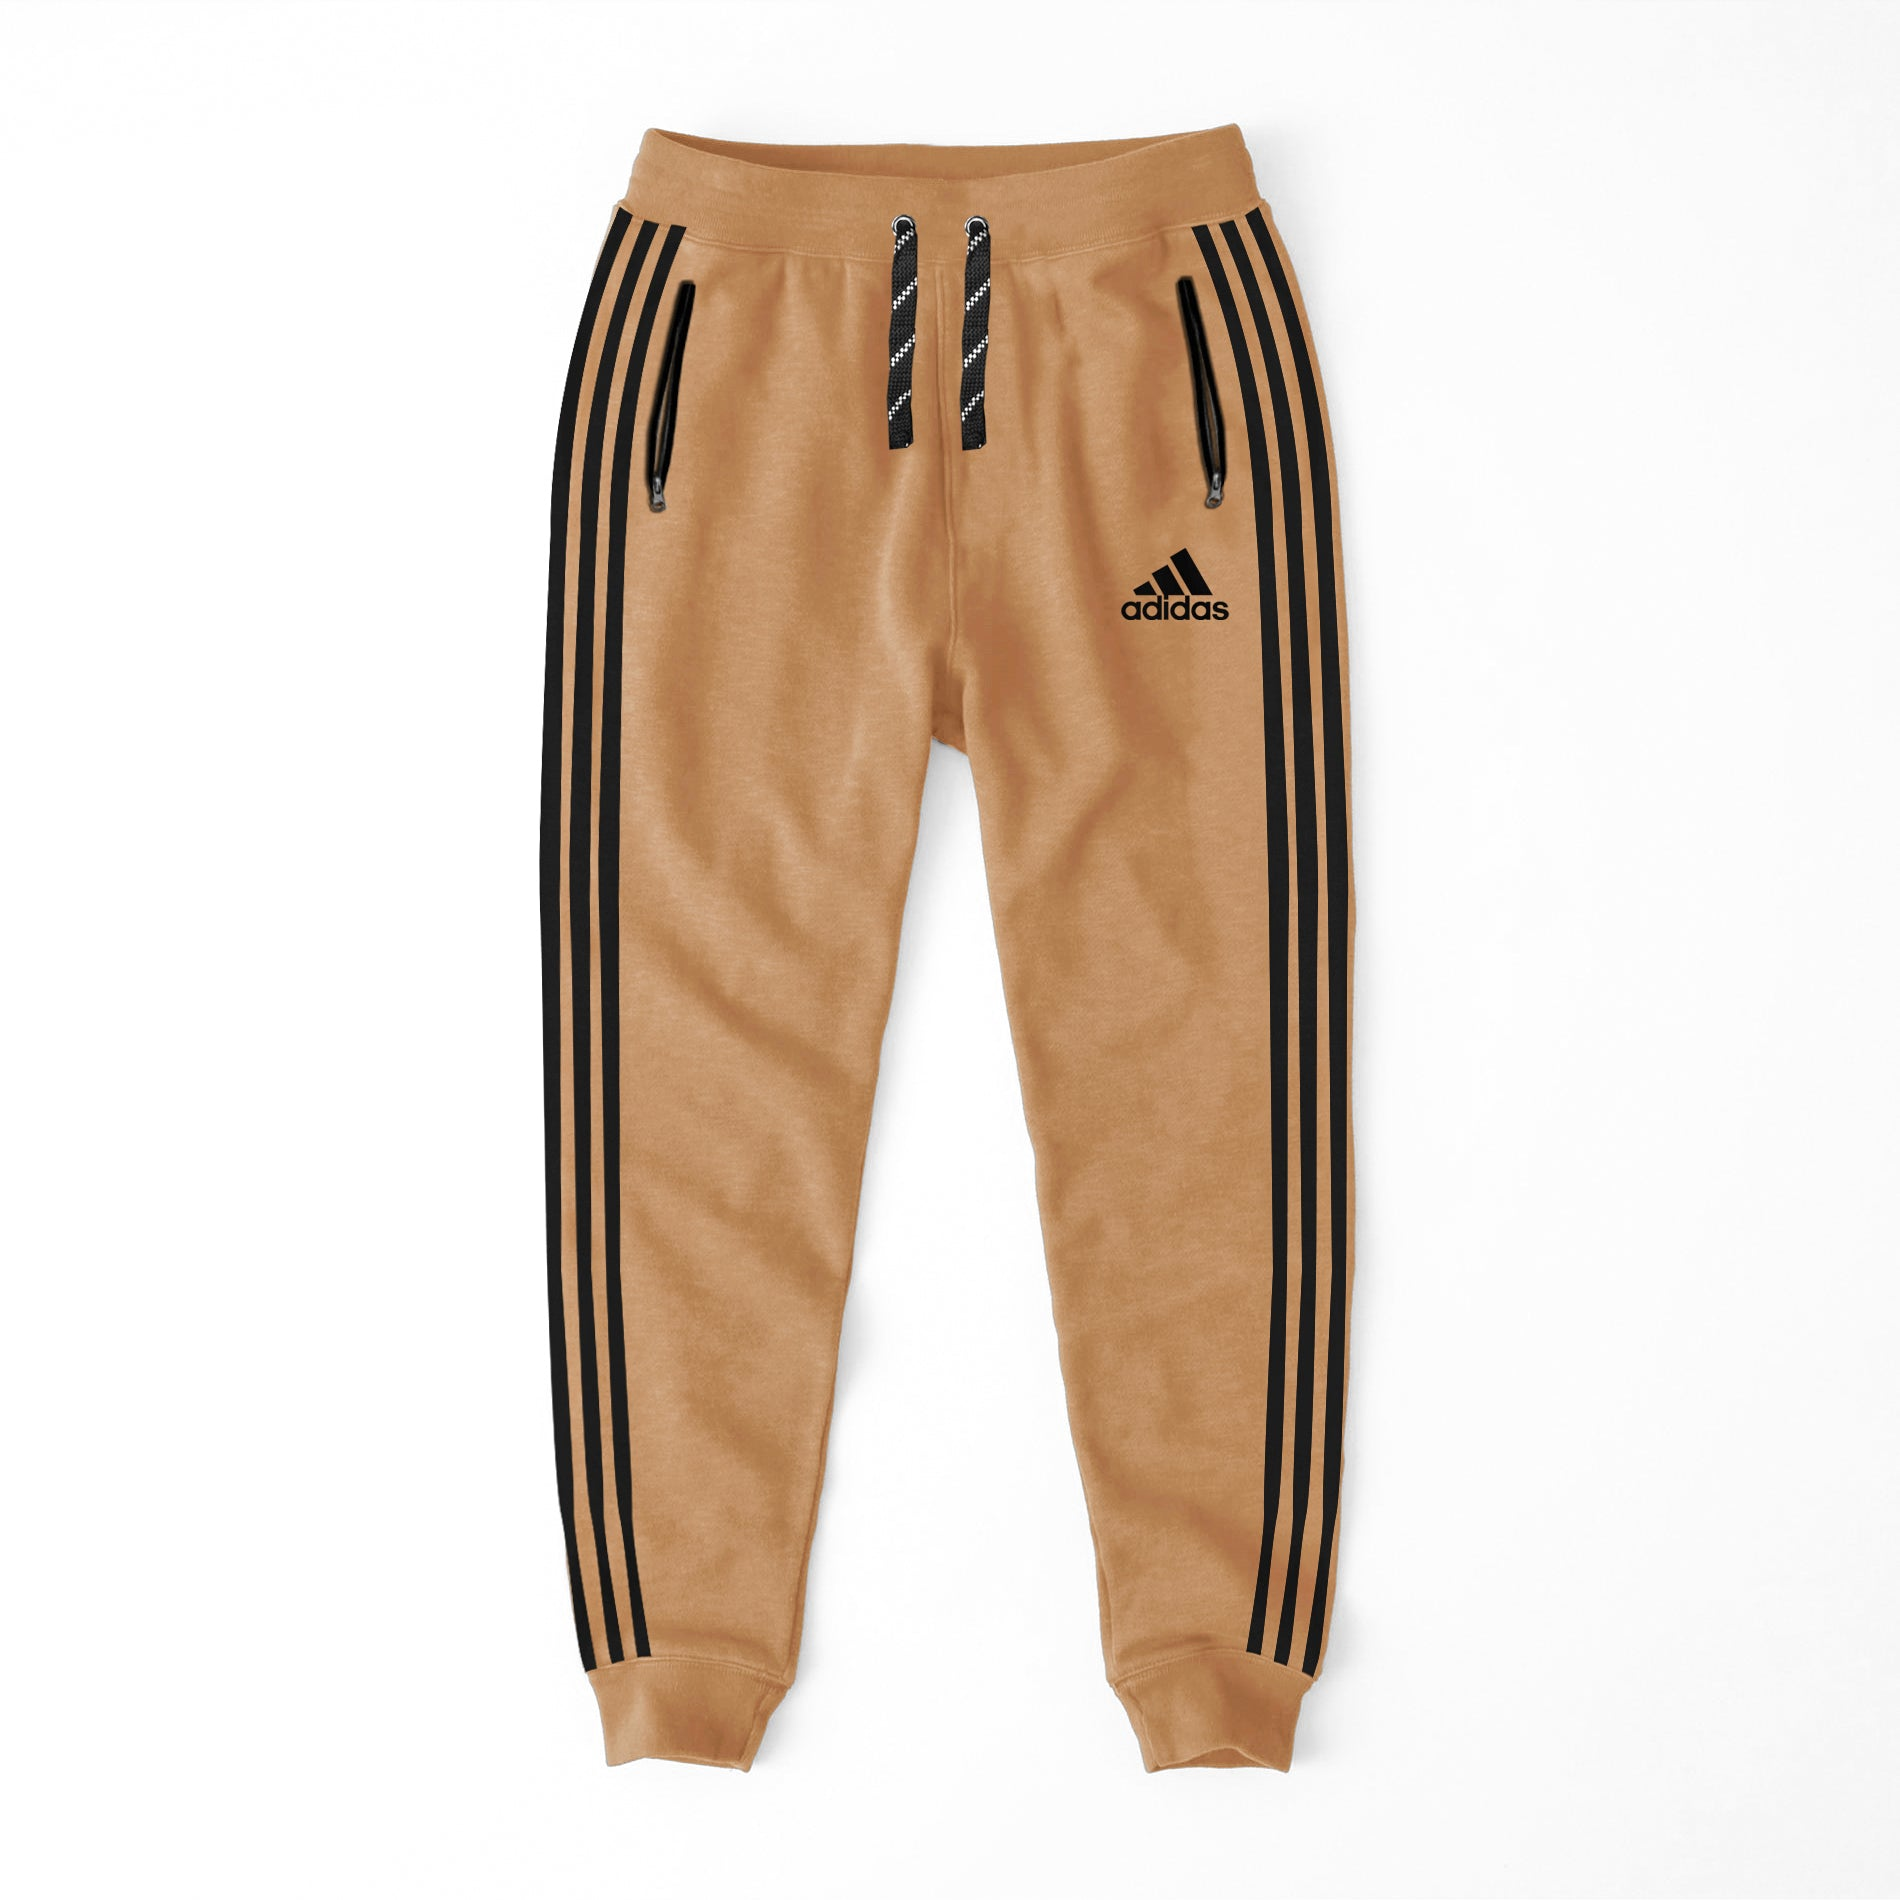 Adidas Single Jersey Slim Fit Jogger Trouser For Men-Camel With Black Stripes-NA8723